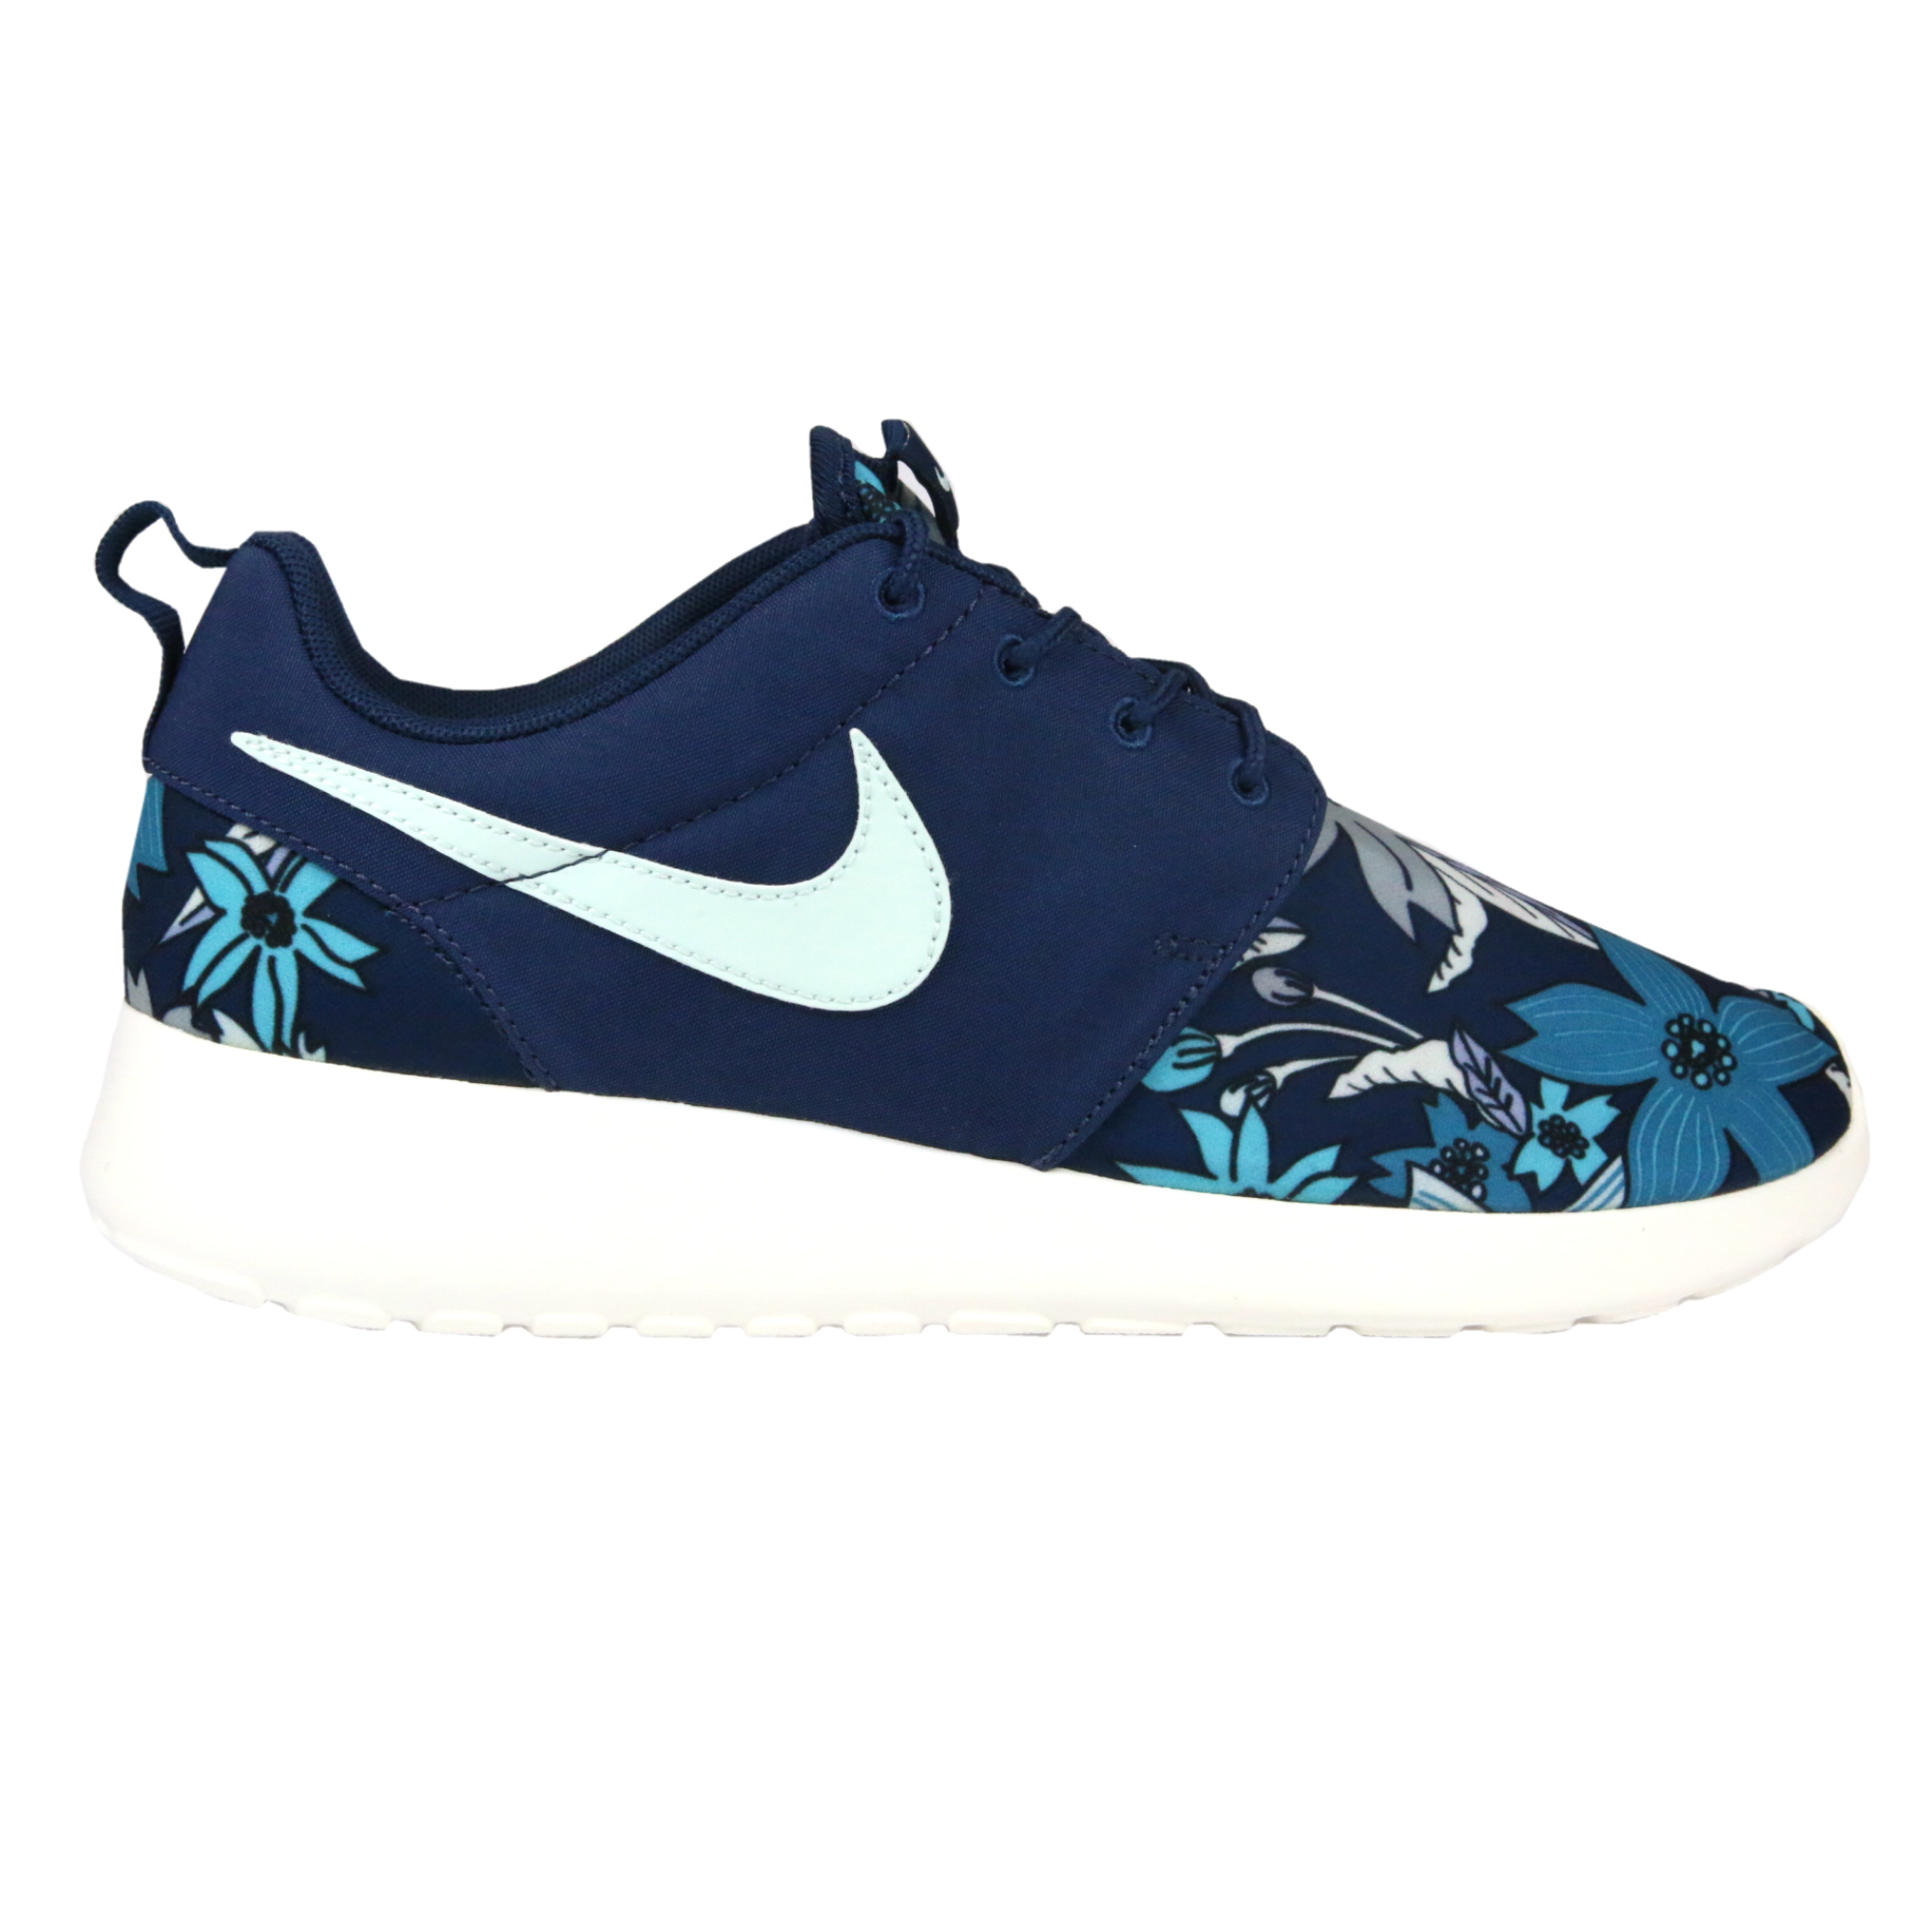 Ebay Shoes Nike Roshe Run